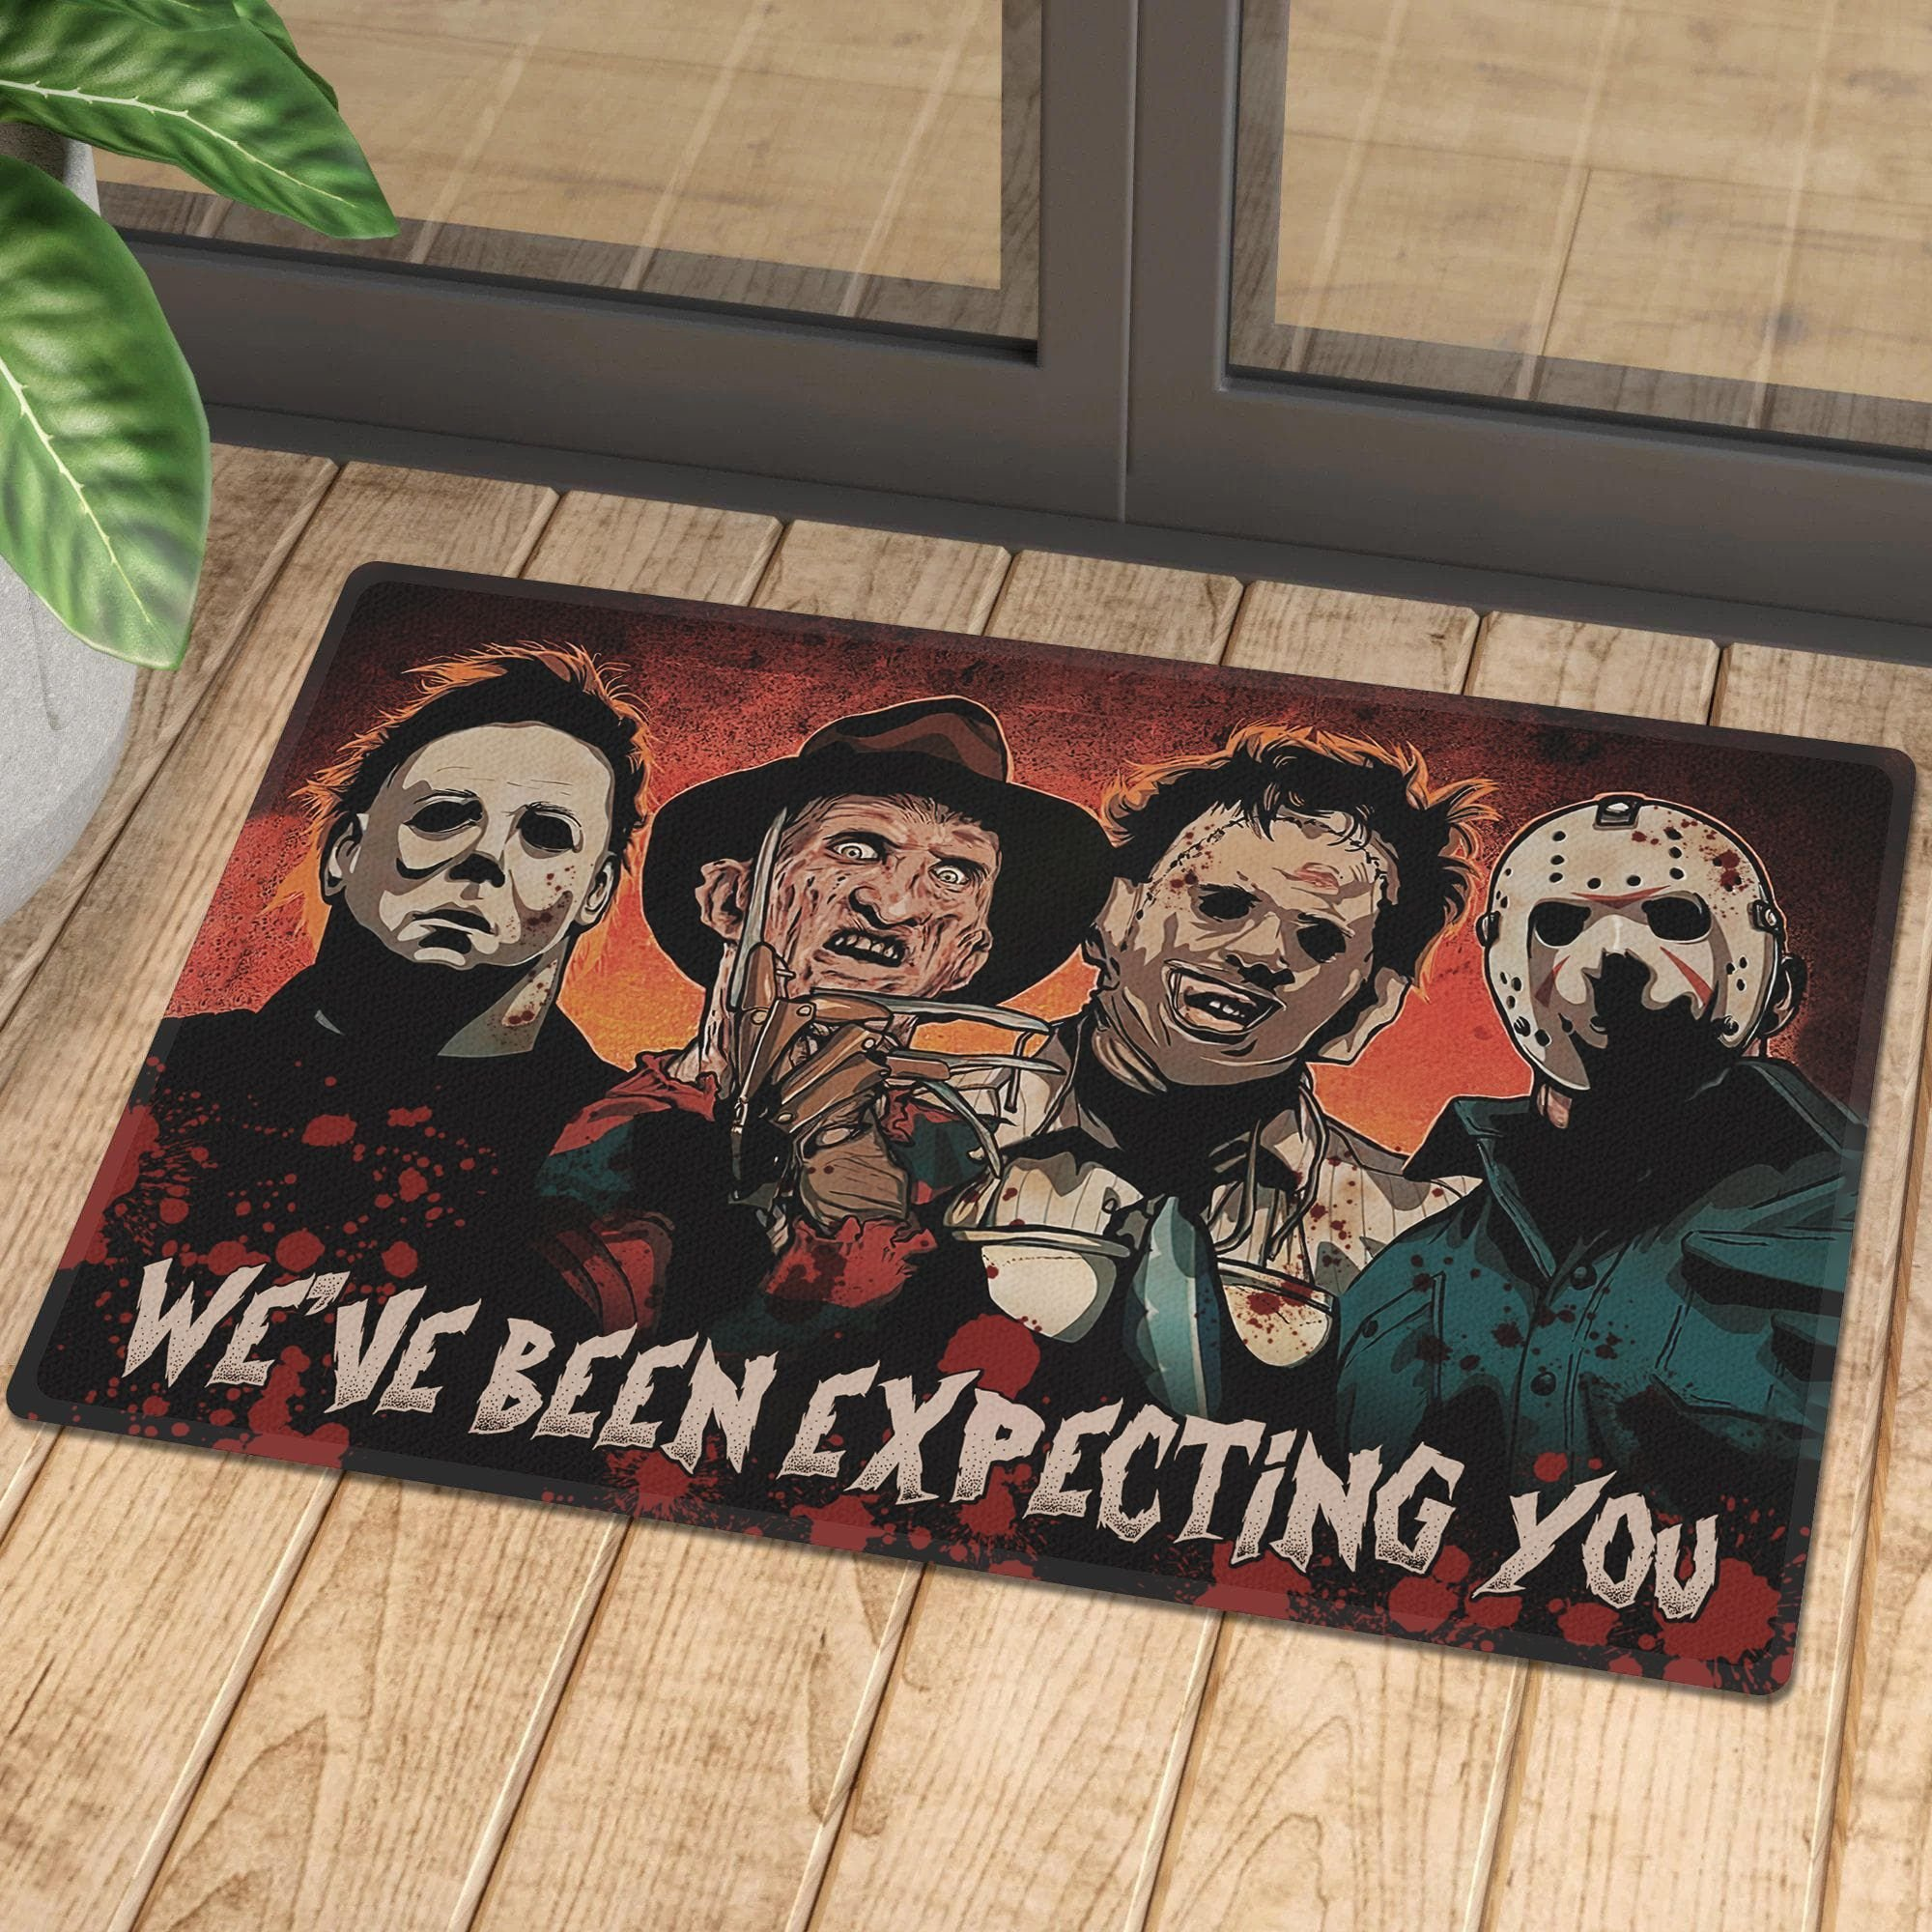 Horror characters we've been expecting You Doormat - LIMITED EDITION